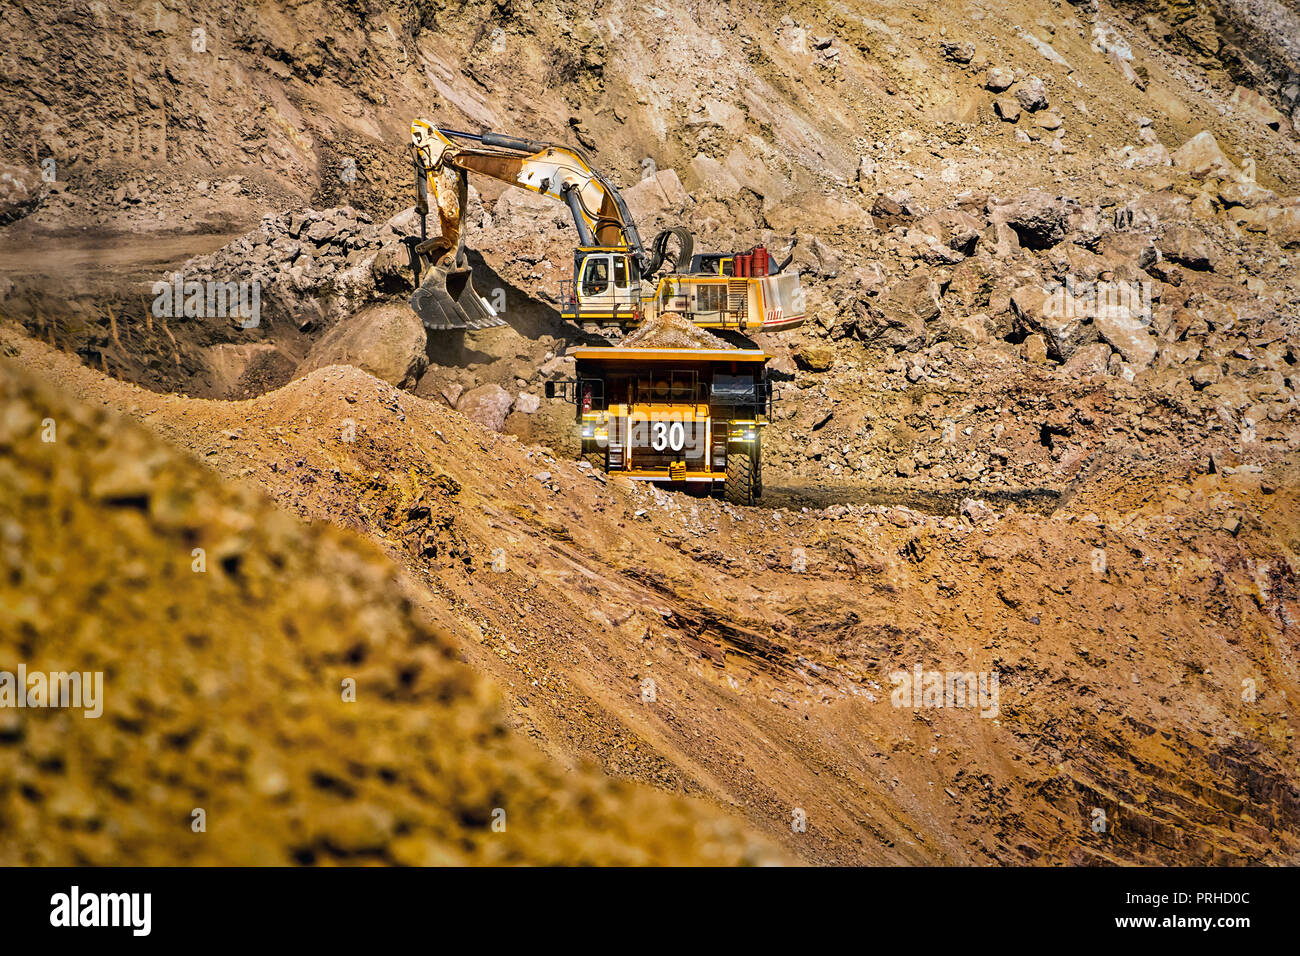 An open pit diamond mine in Botswana with heavy machinery on site. - Stock Image